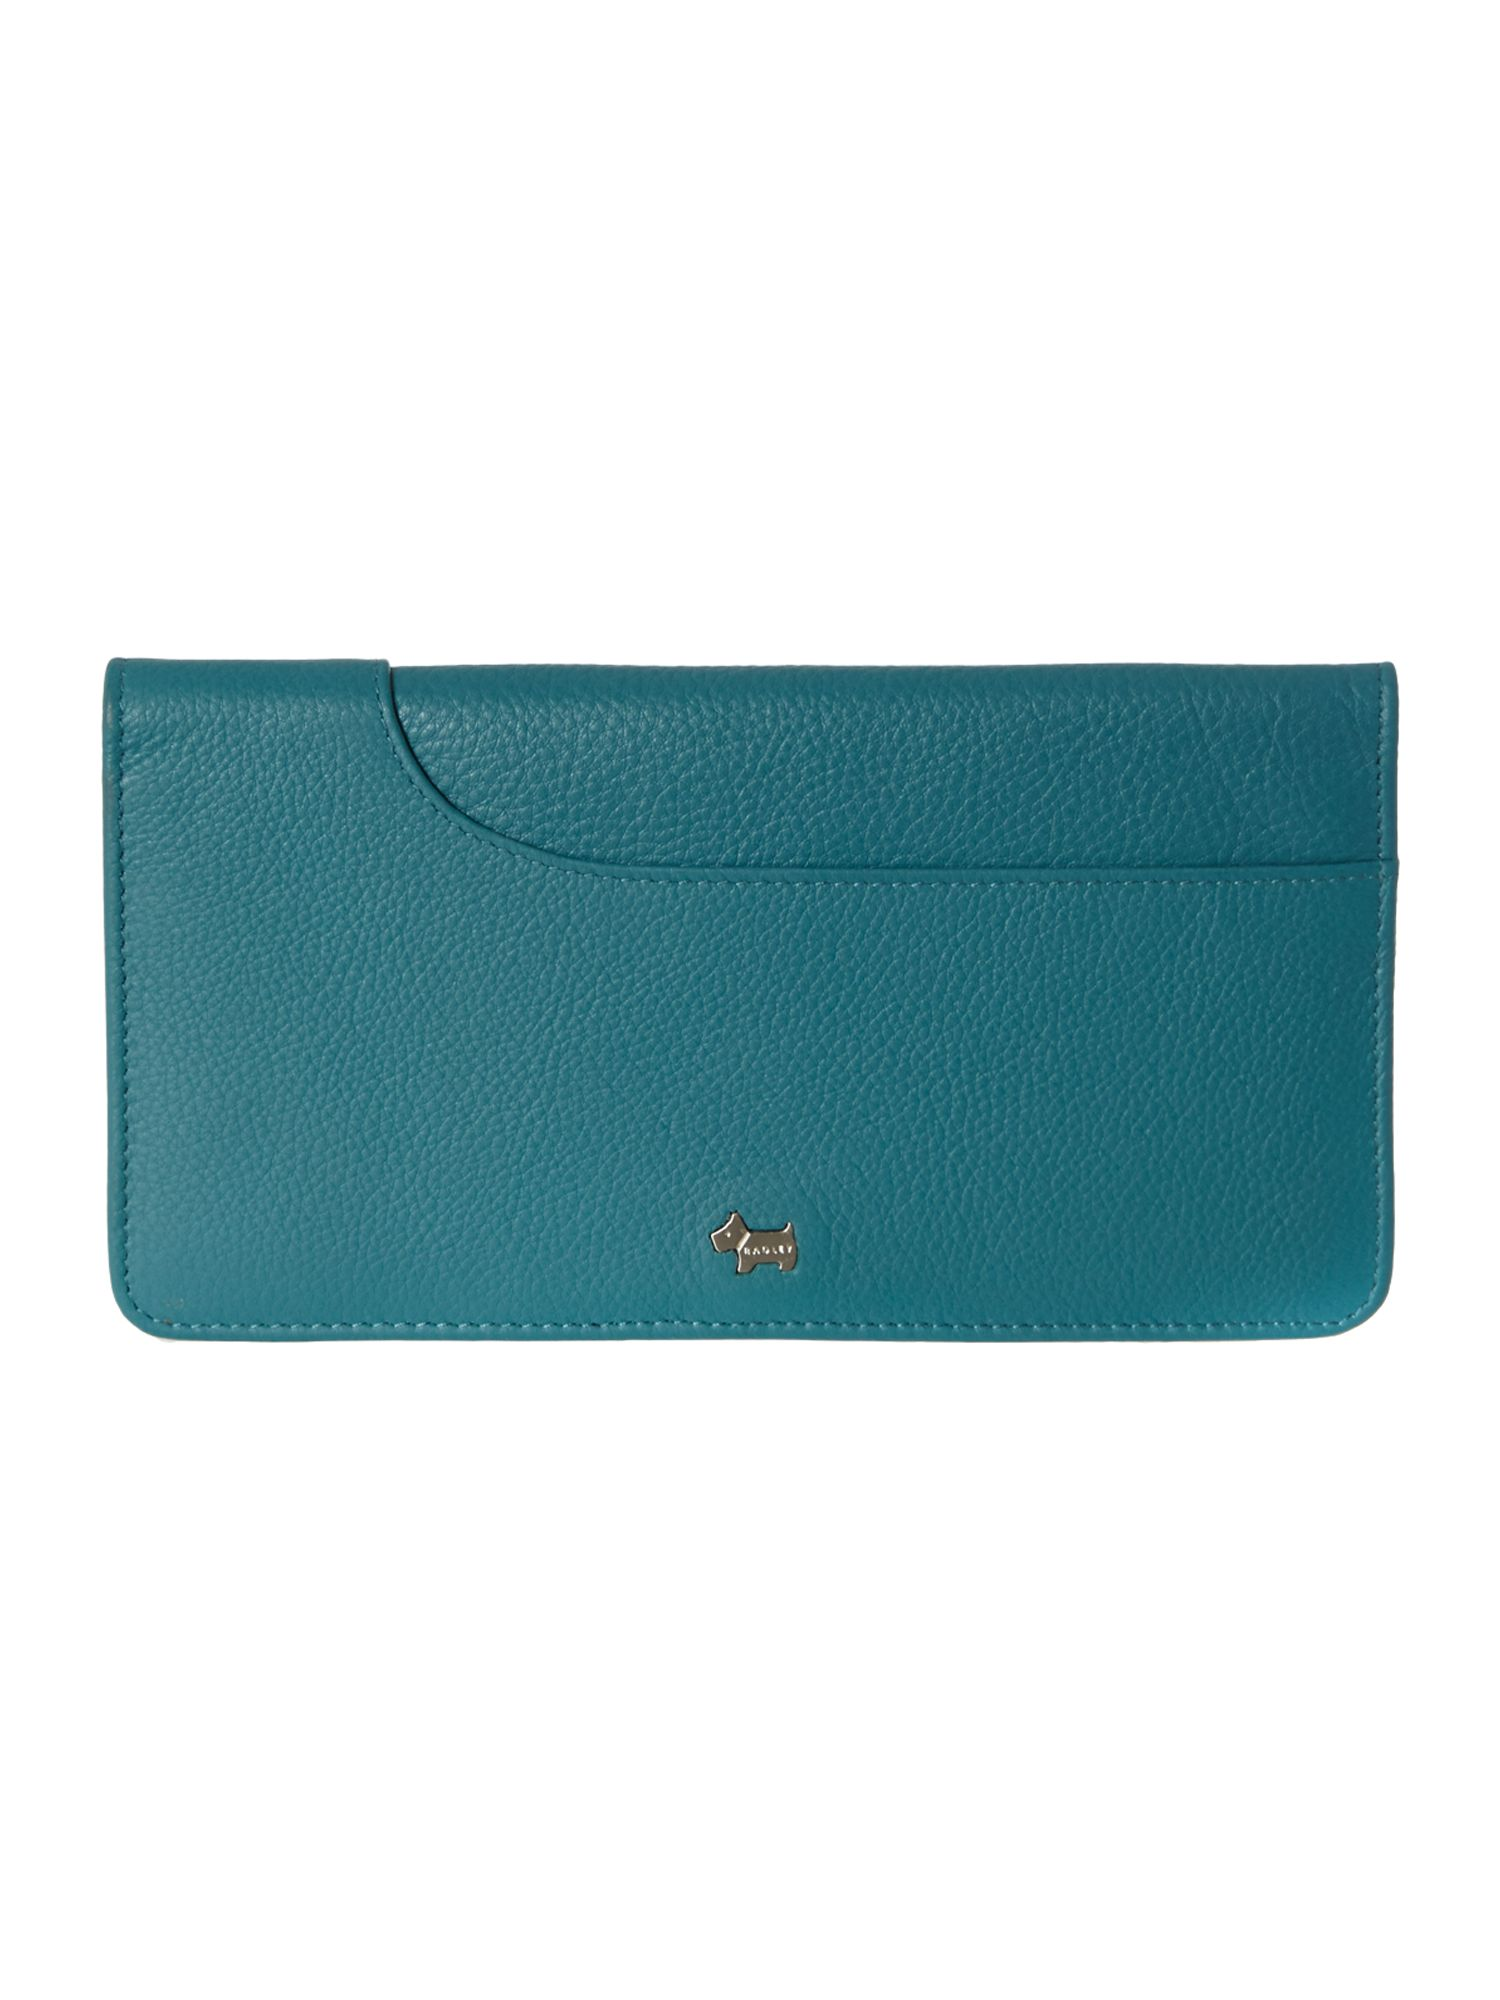 Pocket blue large flapover purse